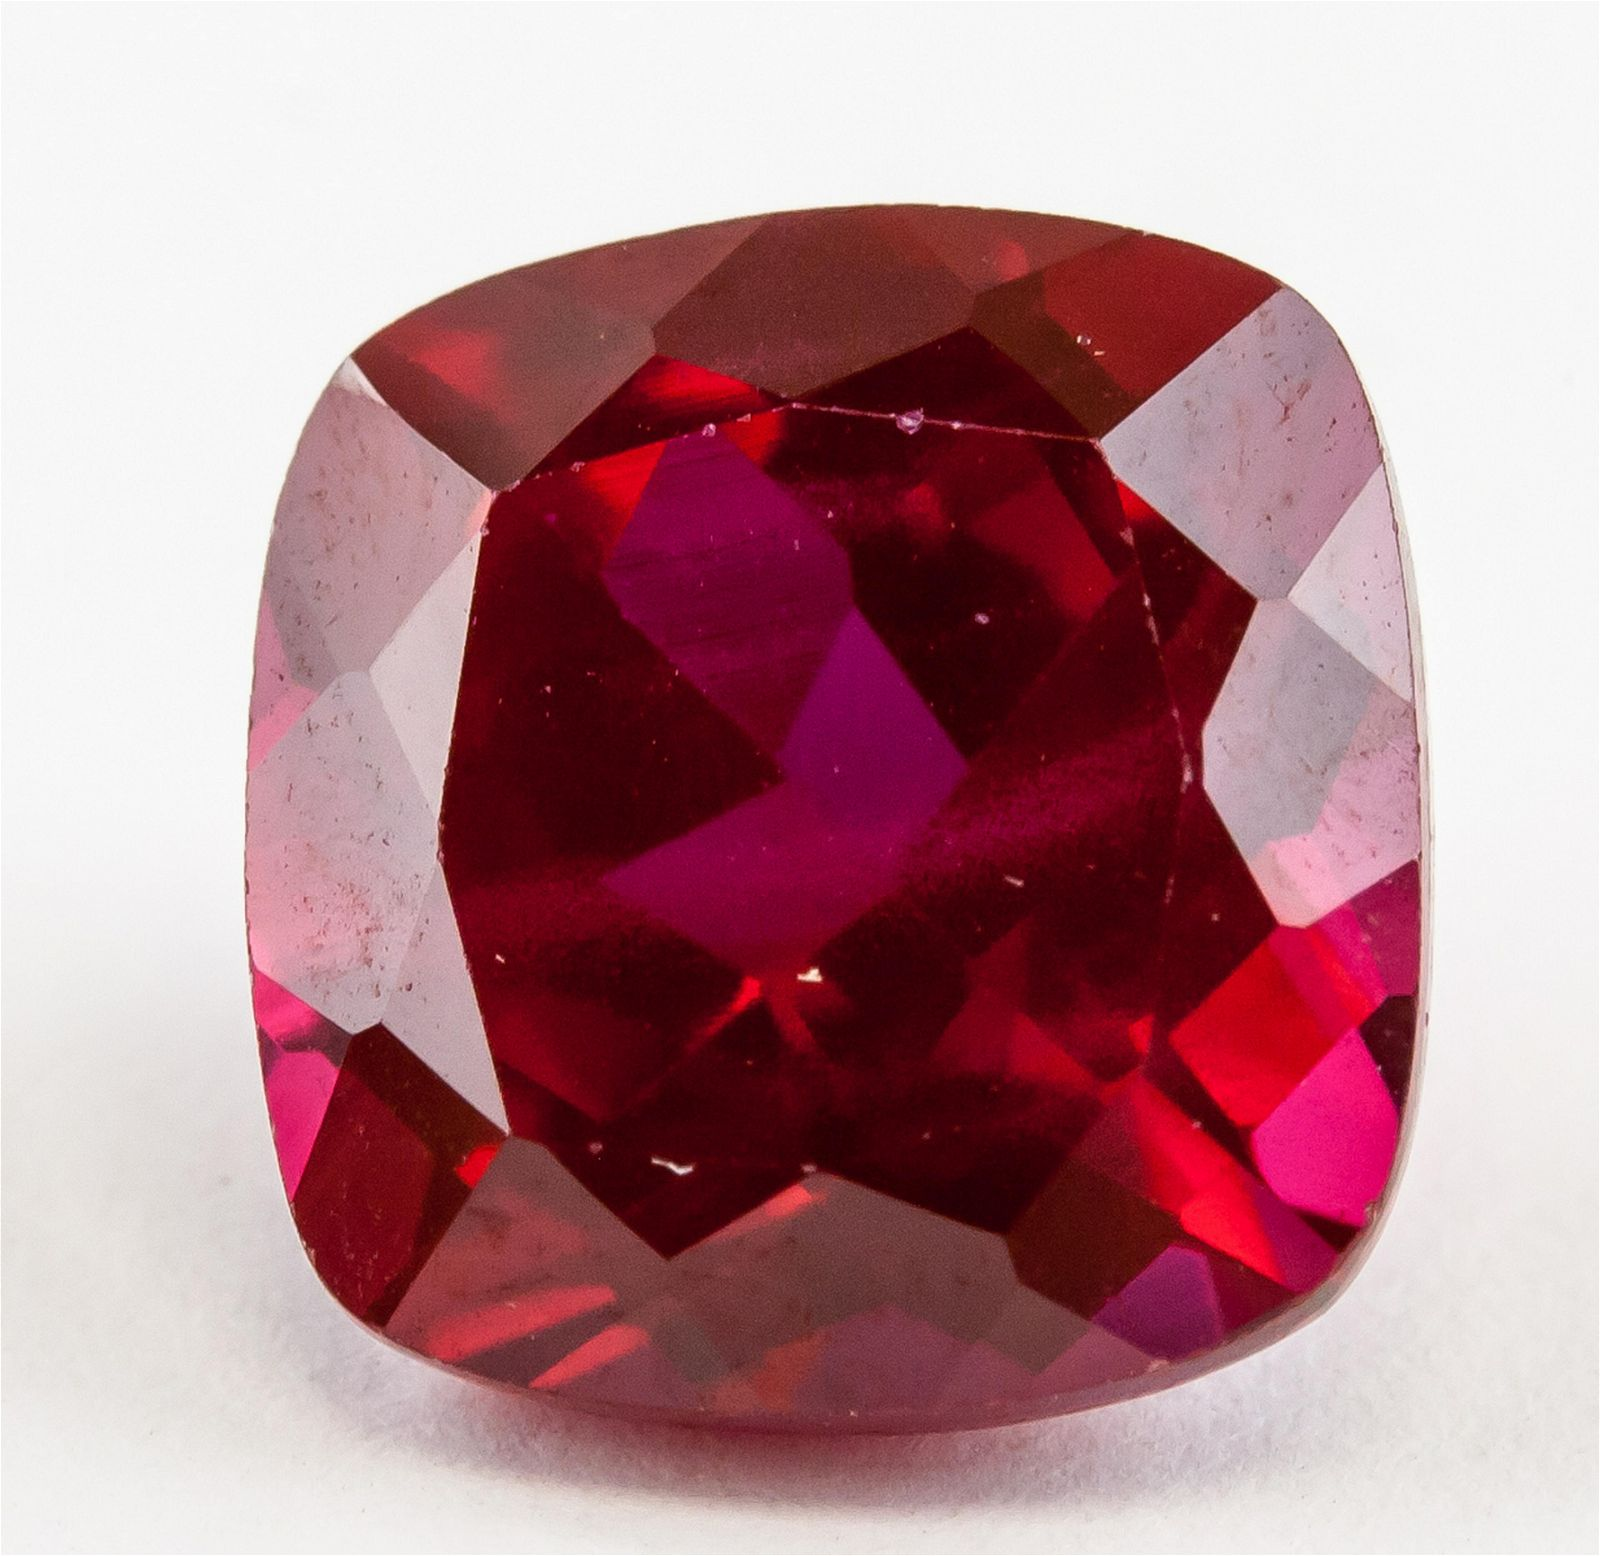 6.65 Ct Cushion Cut Red Ruby AGSL Certificate